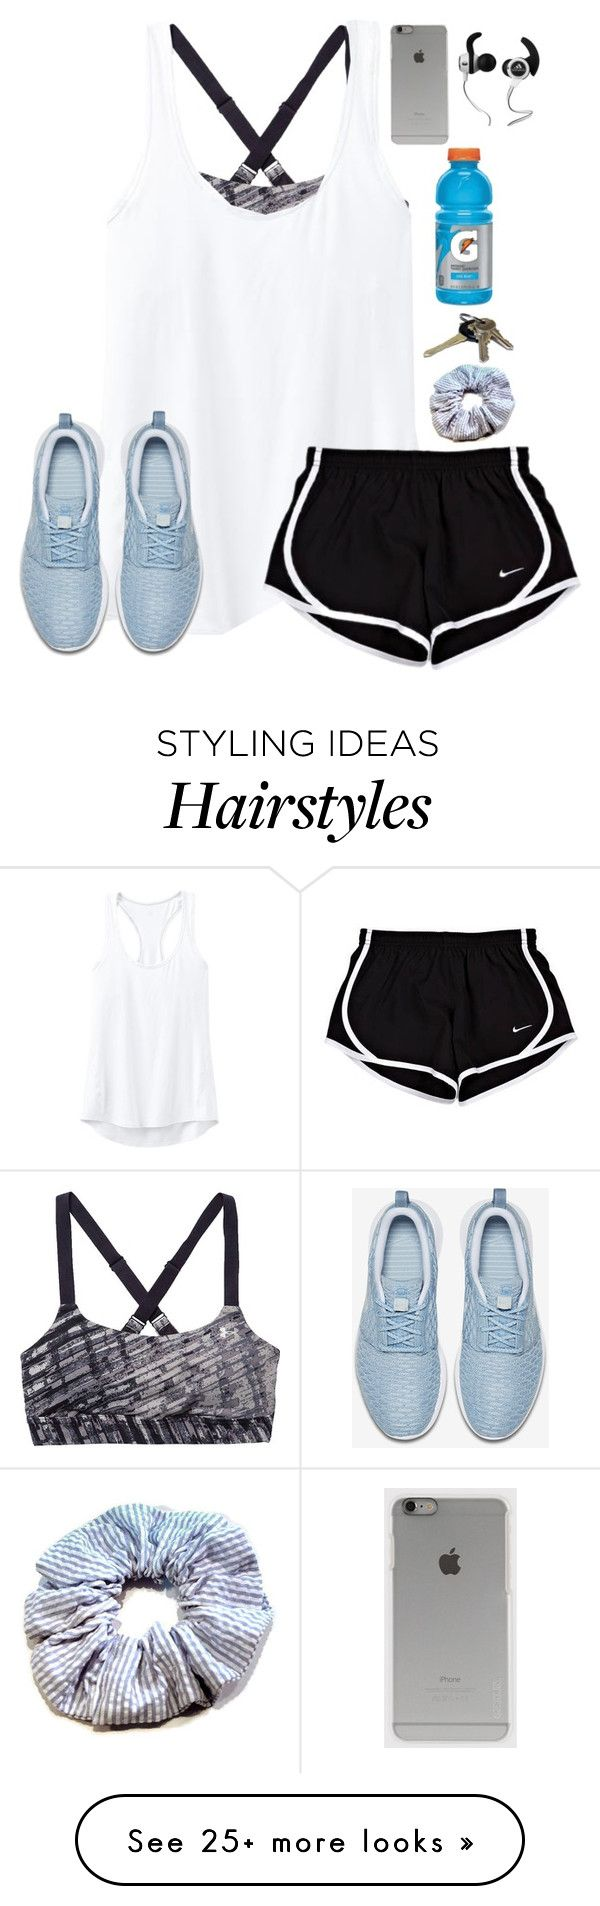 """Leaving for basketball practice"" by lydia-hh on Polyvore featuring moda, Under Armour, Athleta, NIKE, Avon, Incase, Monster, women's clothing, women y female"